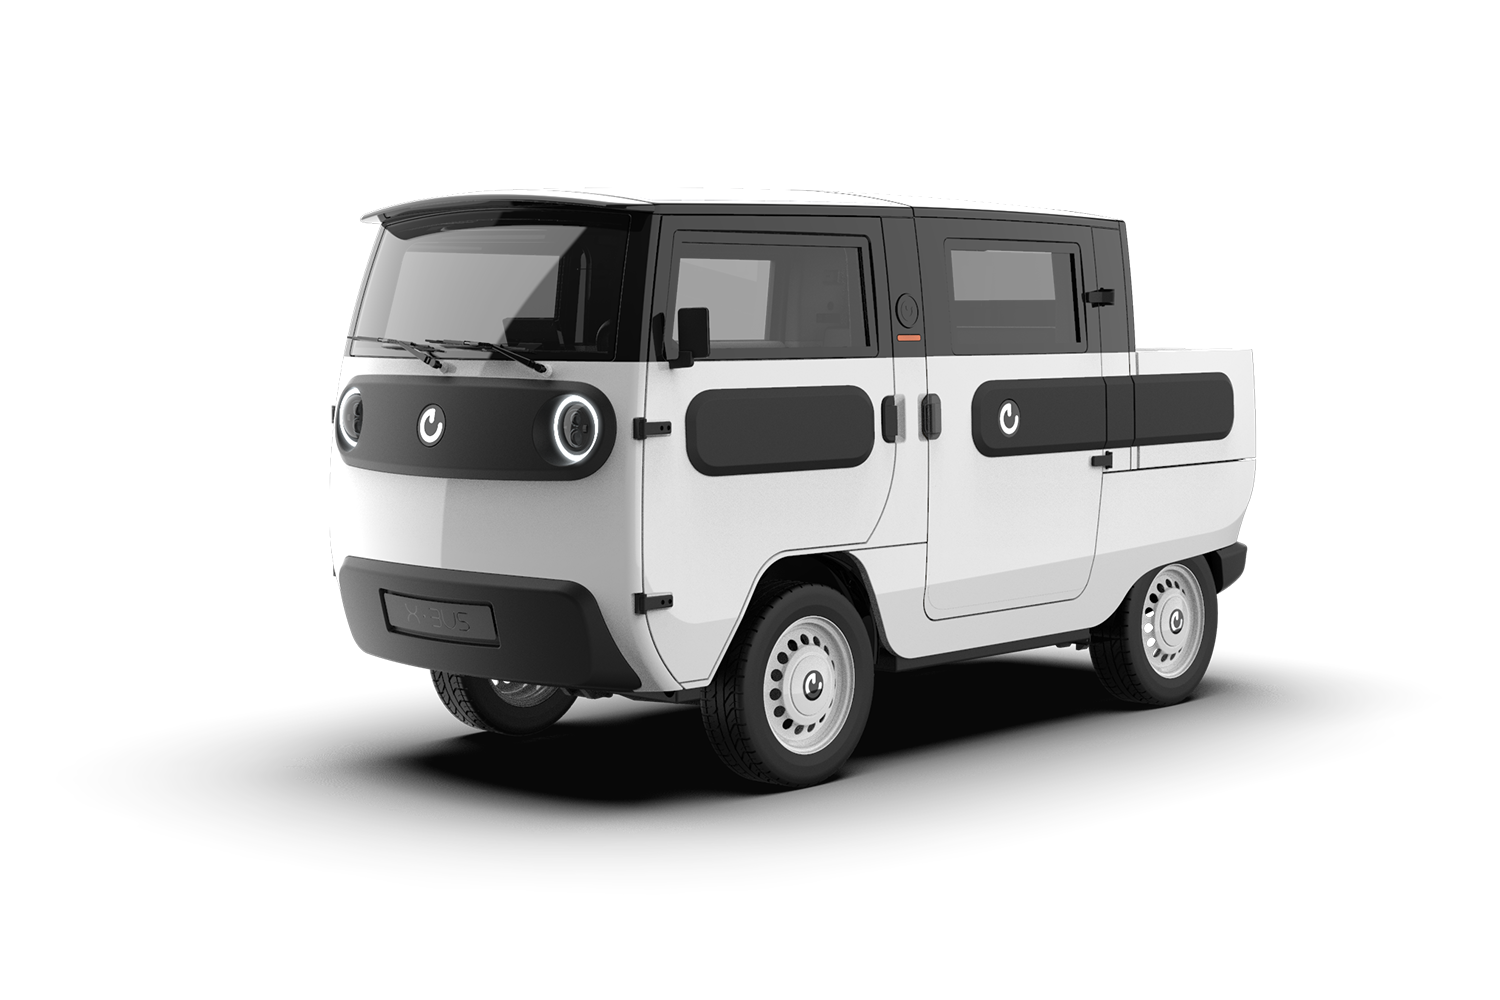 XBUS front offroad Electricbrands